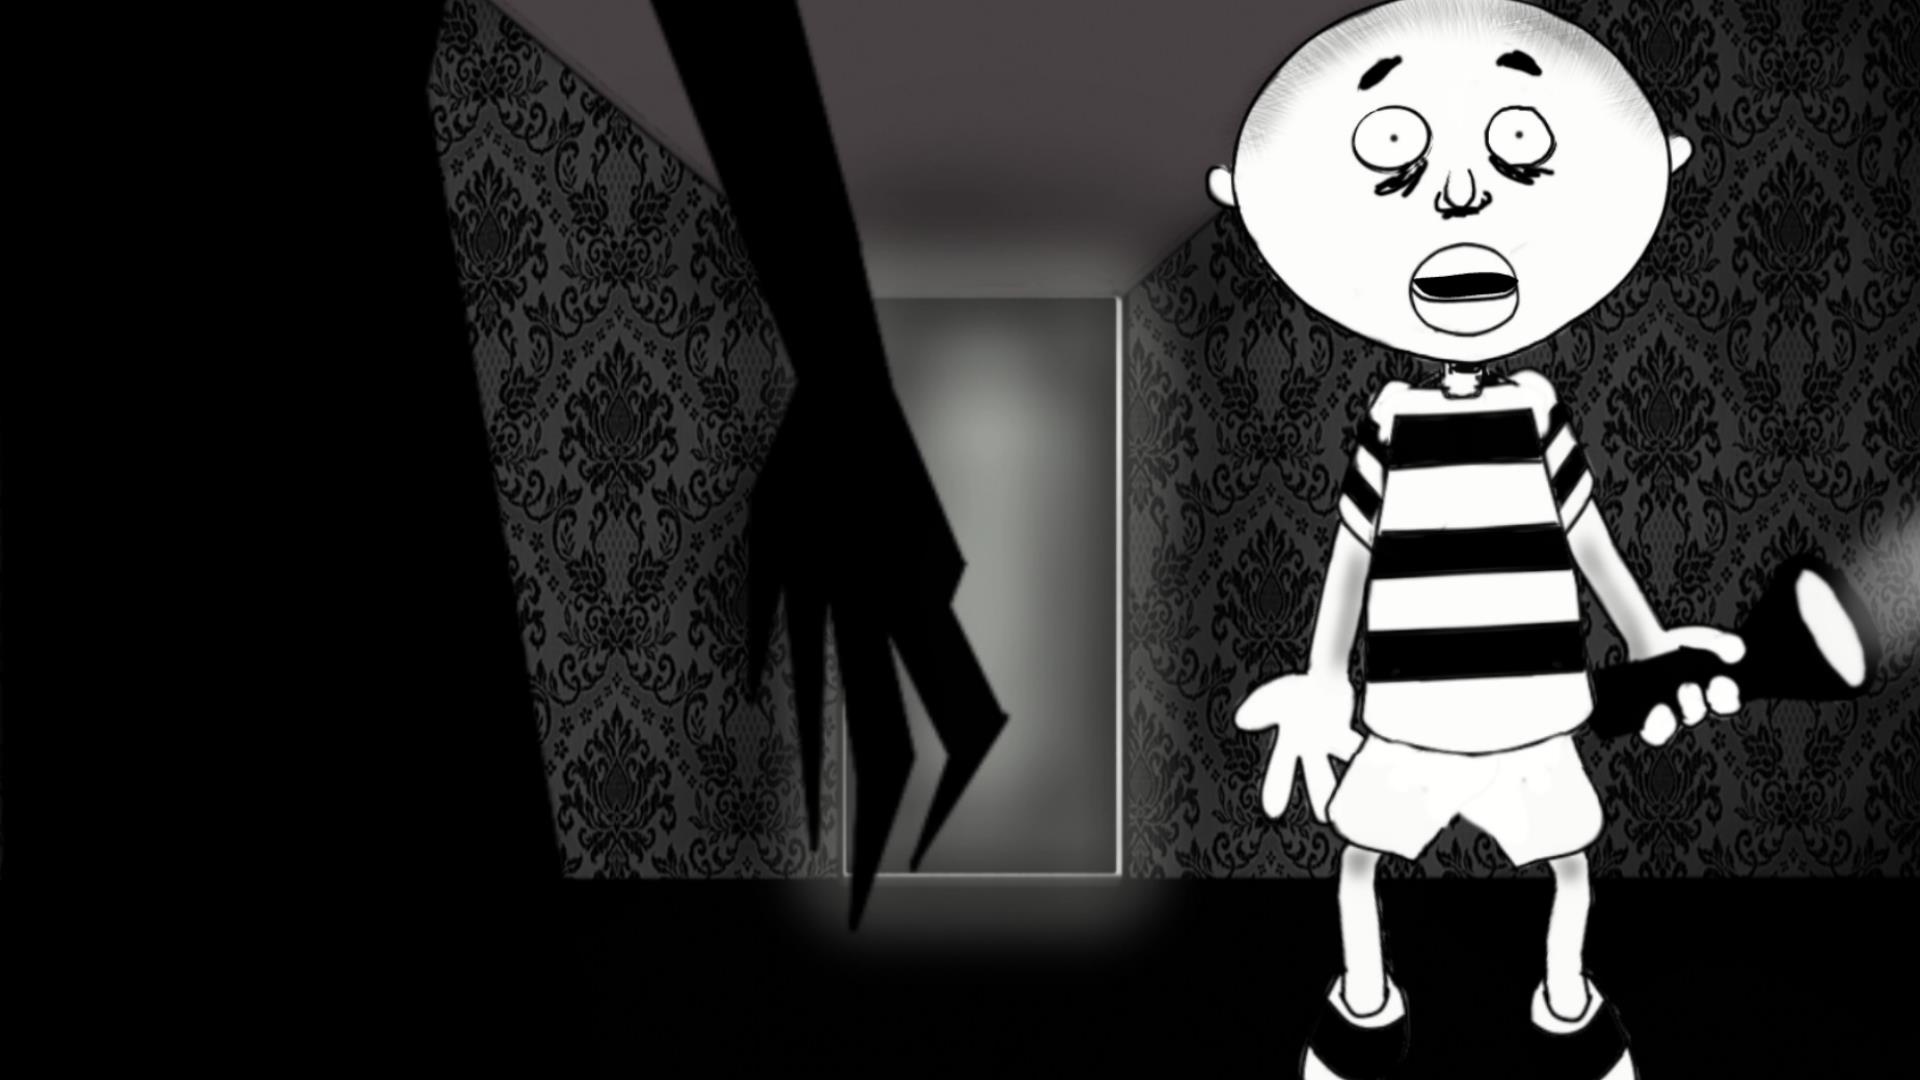 Creep (Detroit) - A stormy night, a dark house, strange noises, and a little boy with a very active imagination run wild in this animated short film. - 03:18Directed by Carl Wilson